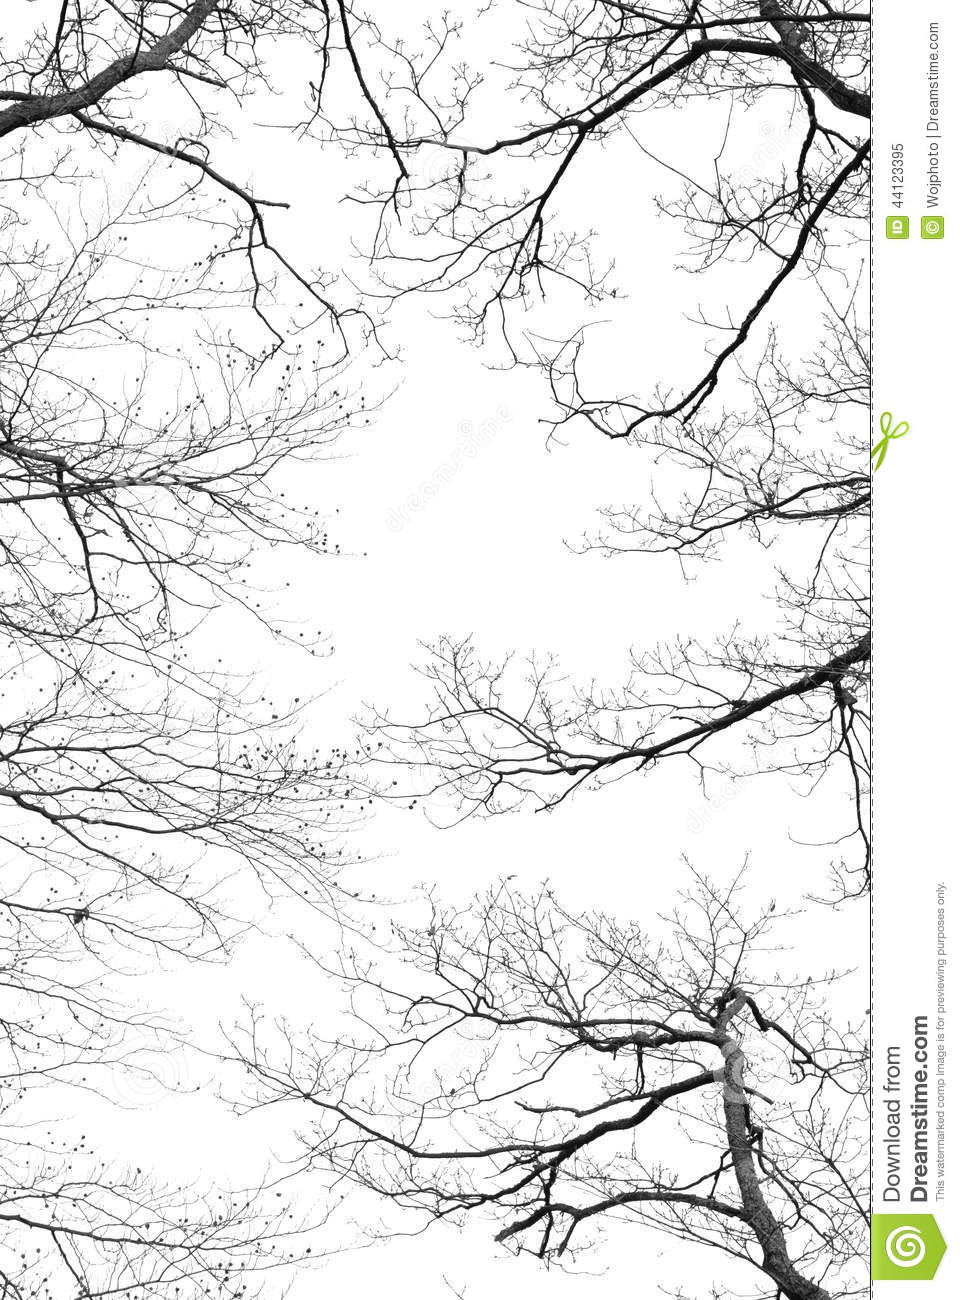 Bare tree branches on a white background